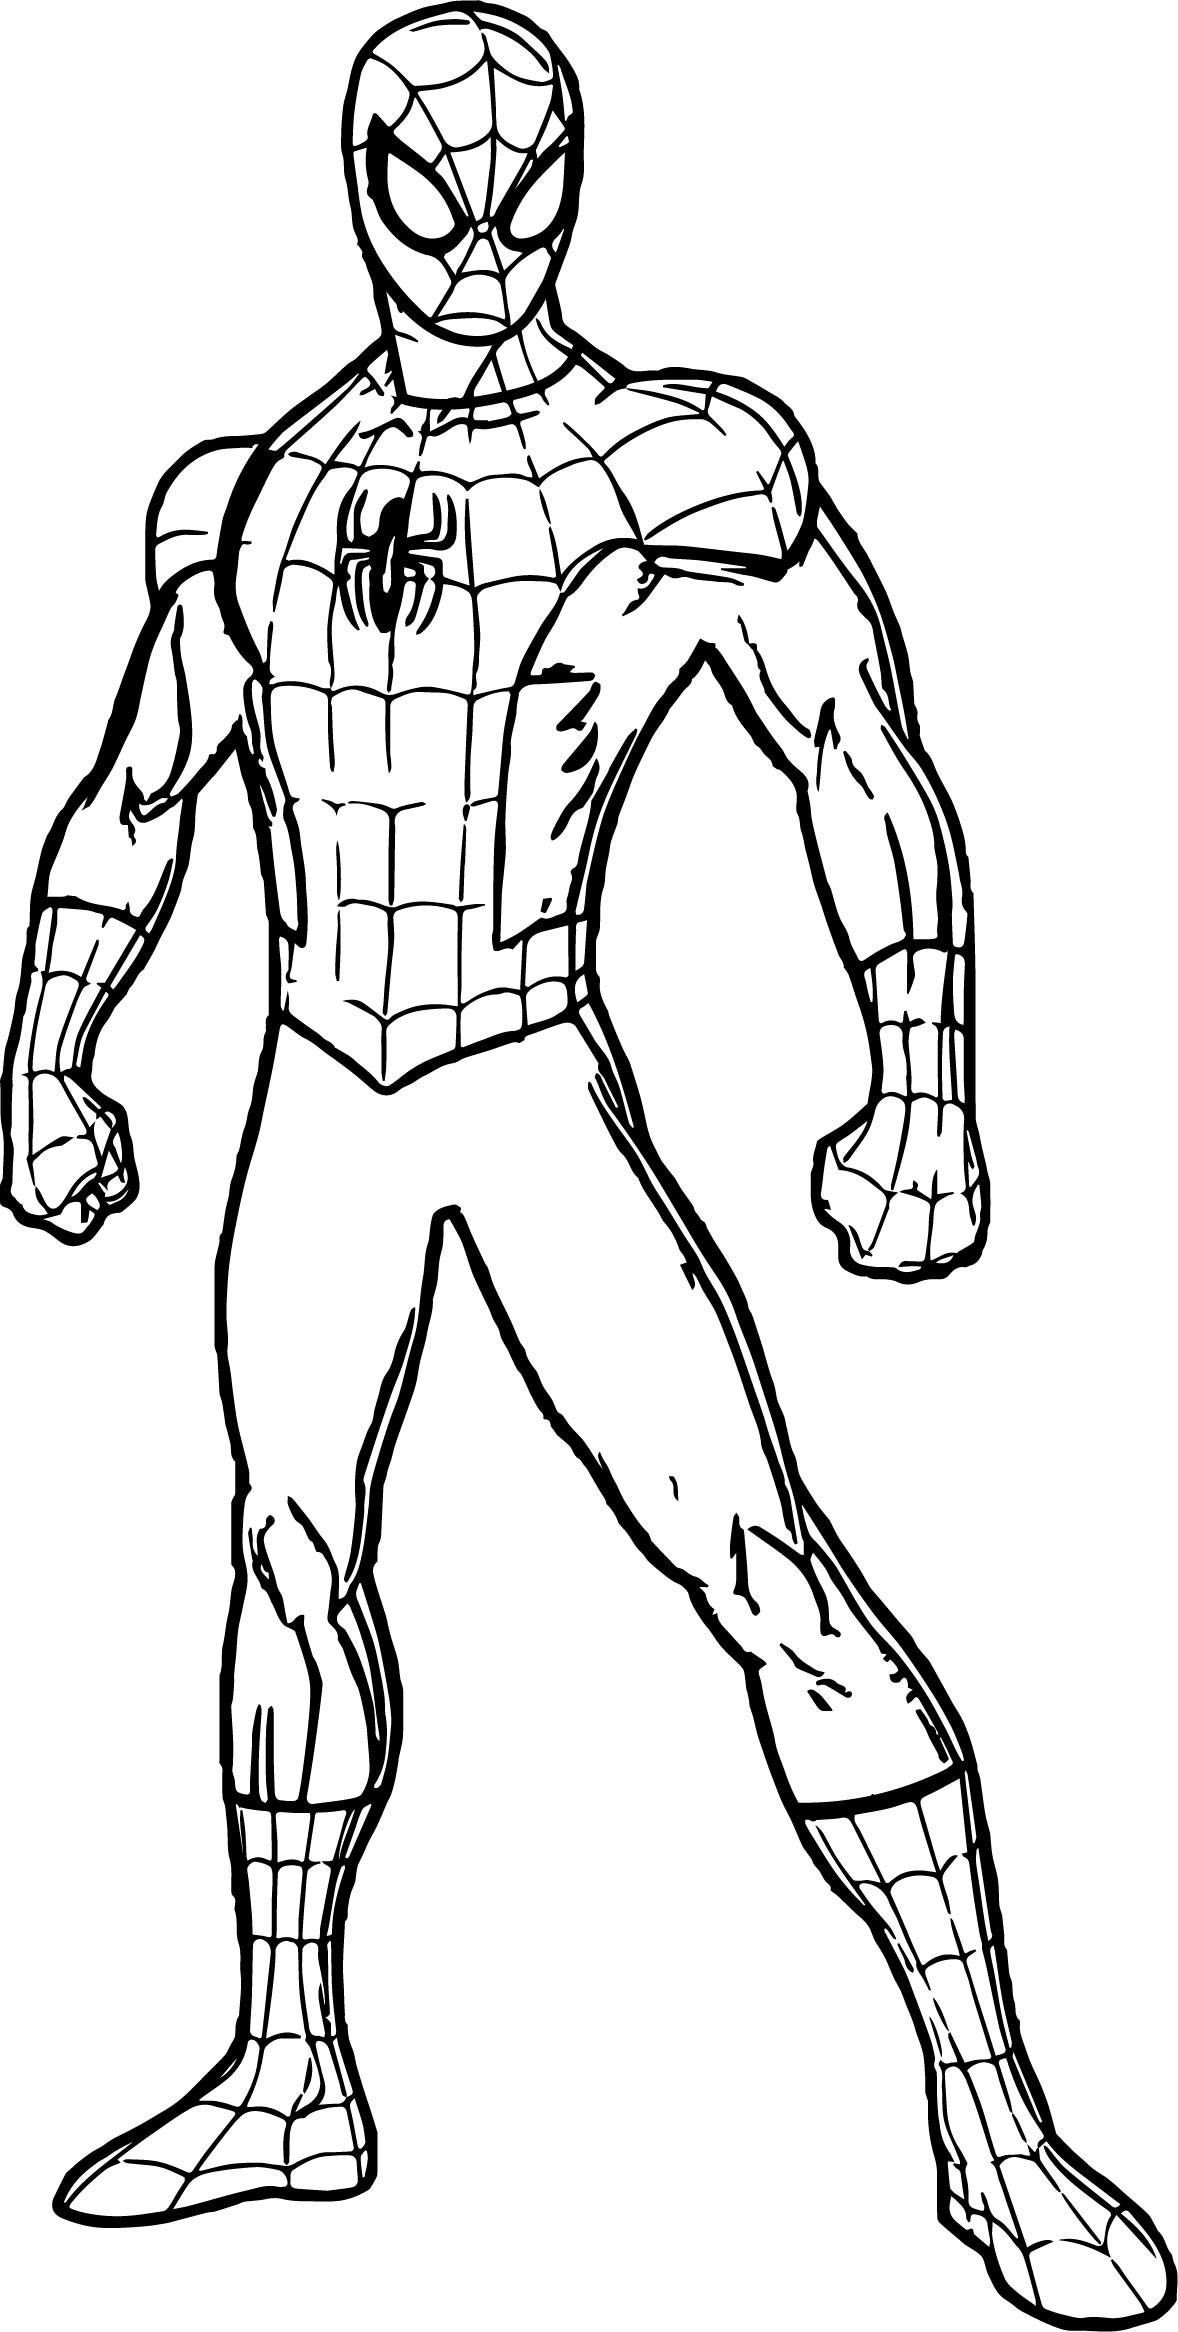 Spiderman Coloring Page New Printable Pages 3 At Avengers Coloring Pages Superhero Coloring Pages Avengers Coloring